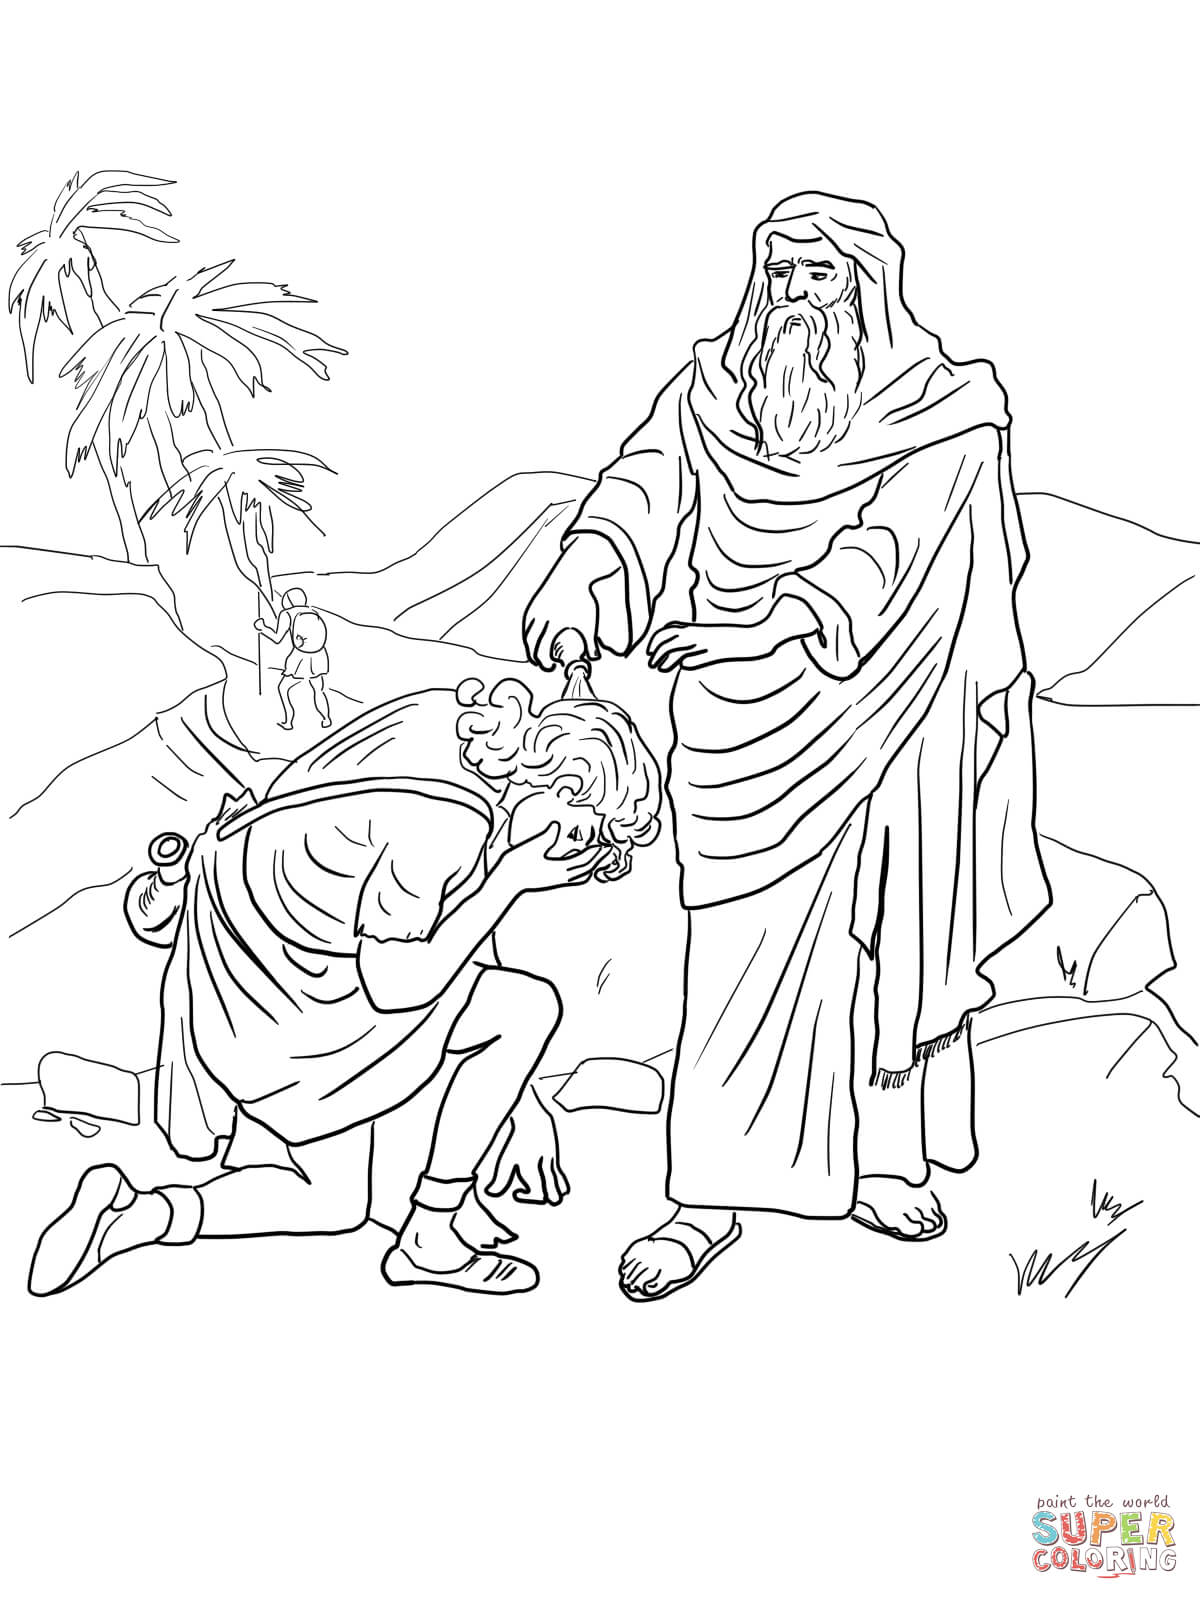 samuel anoints david king coloring page samuel anointing david in the story of king saul coloring samuel coloring king anoints david page